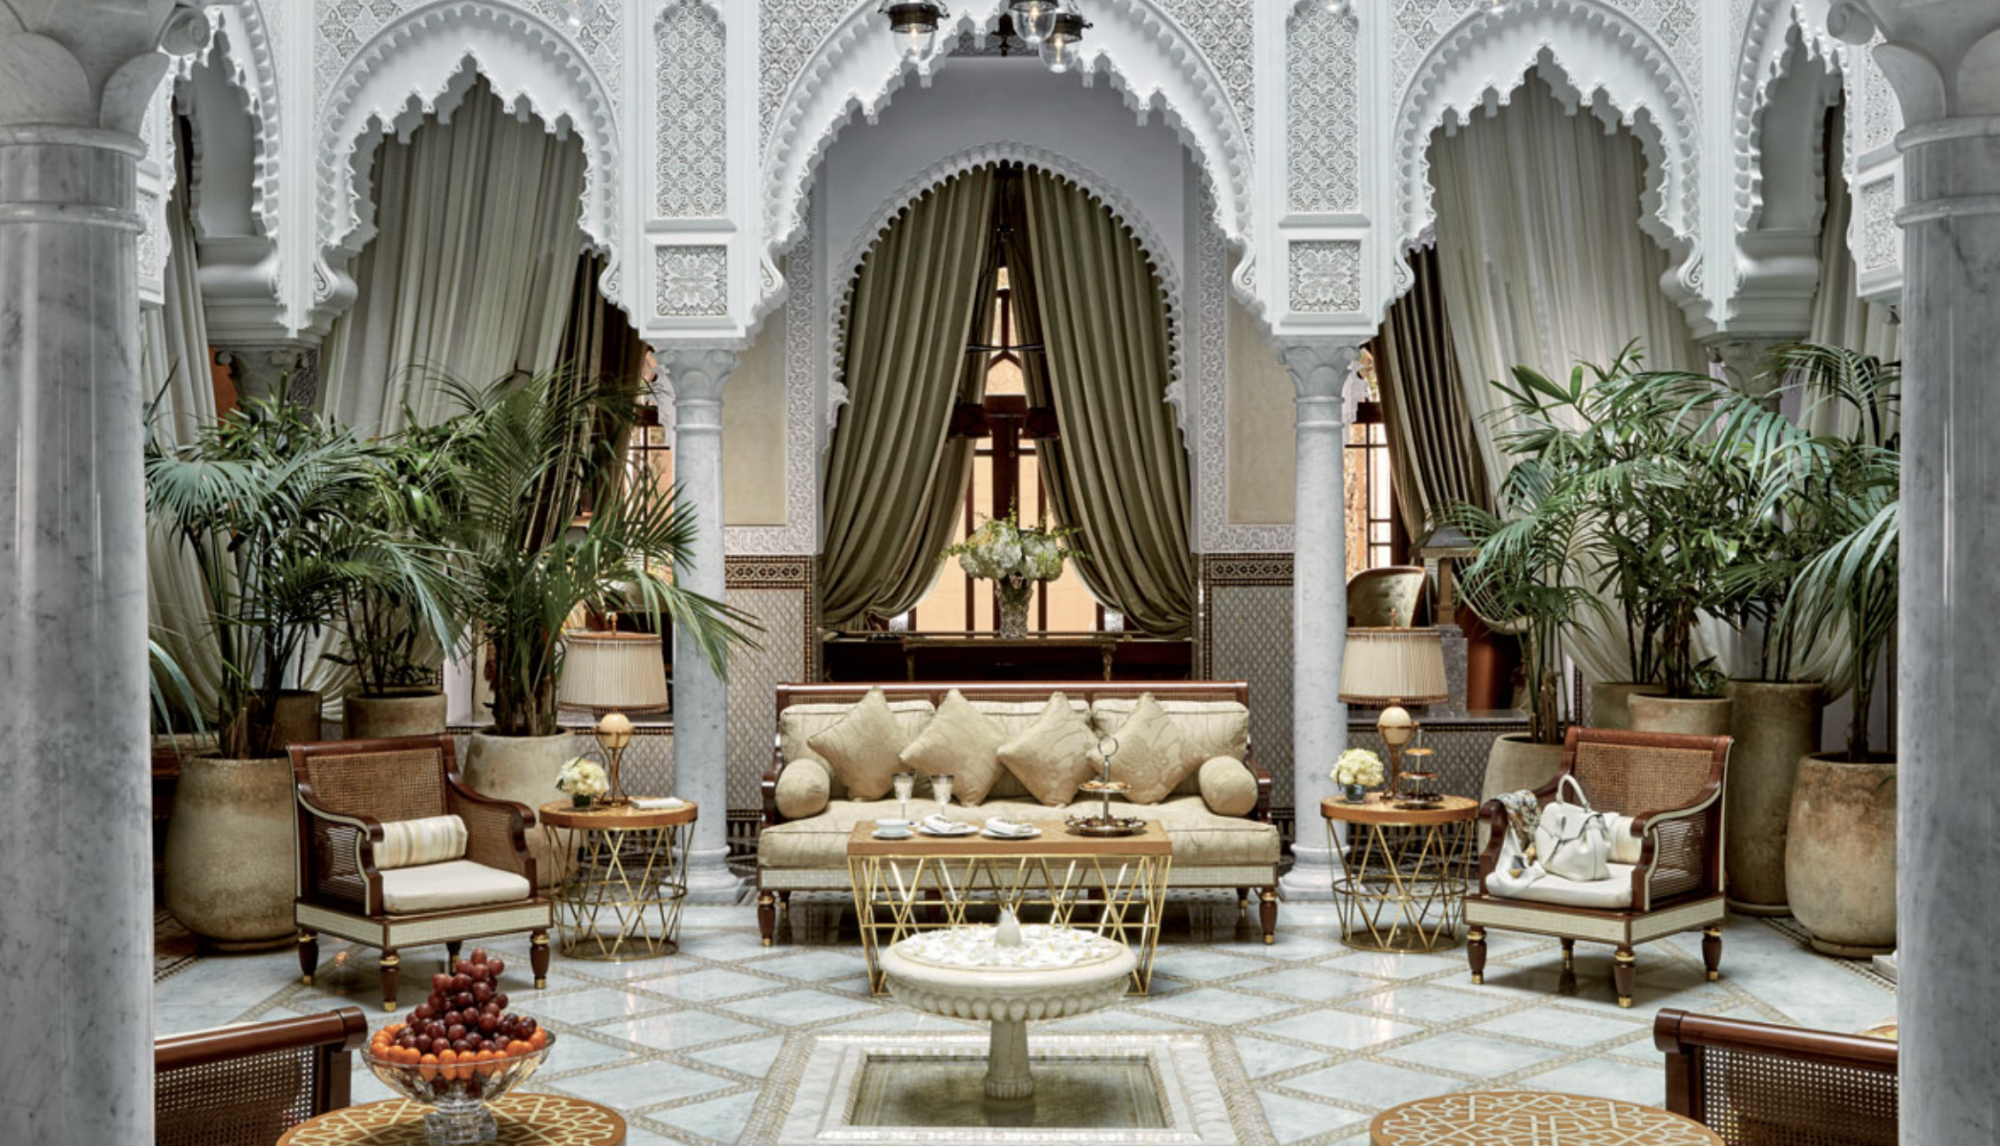 Inside The 12 Most Expensive Hotel Rooms And Suites In The World